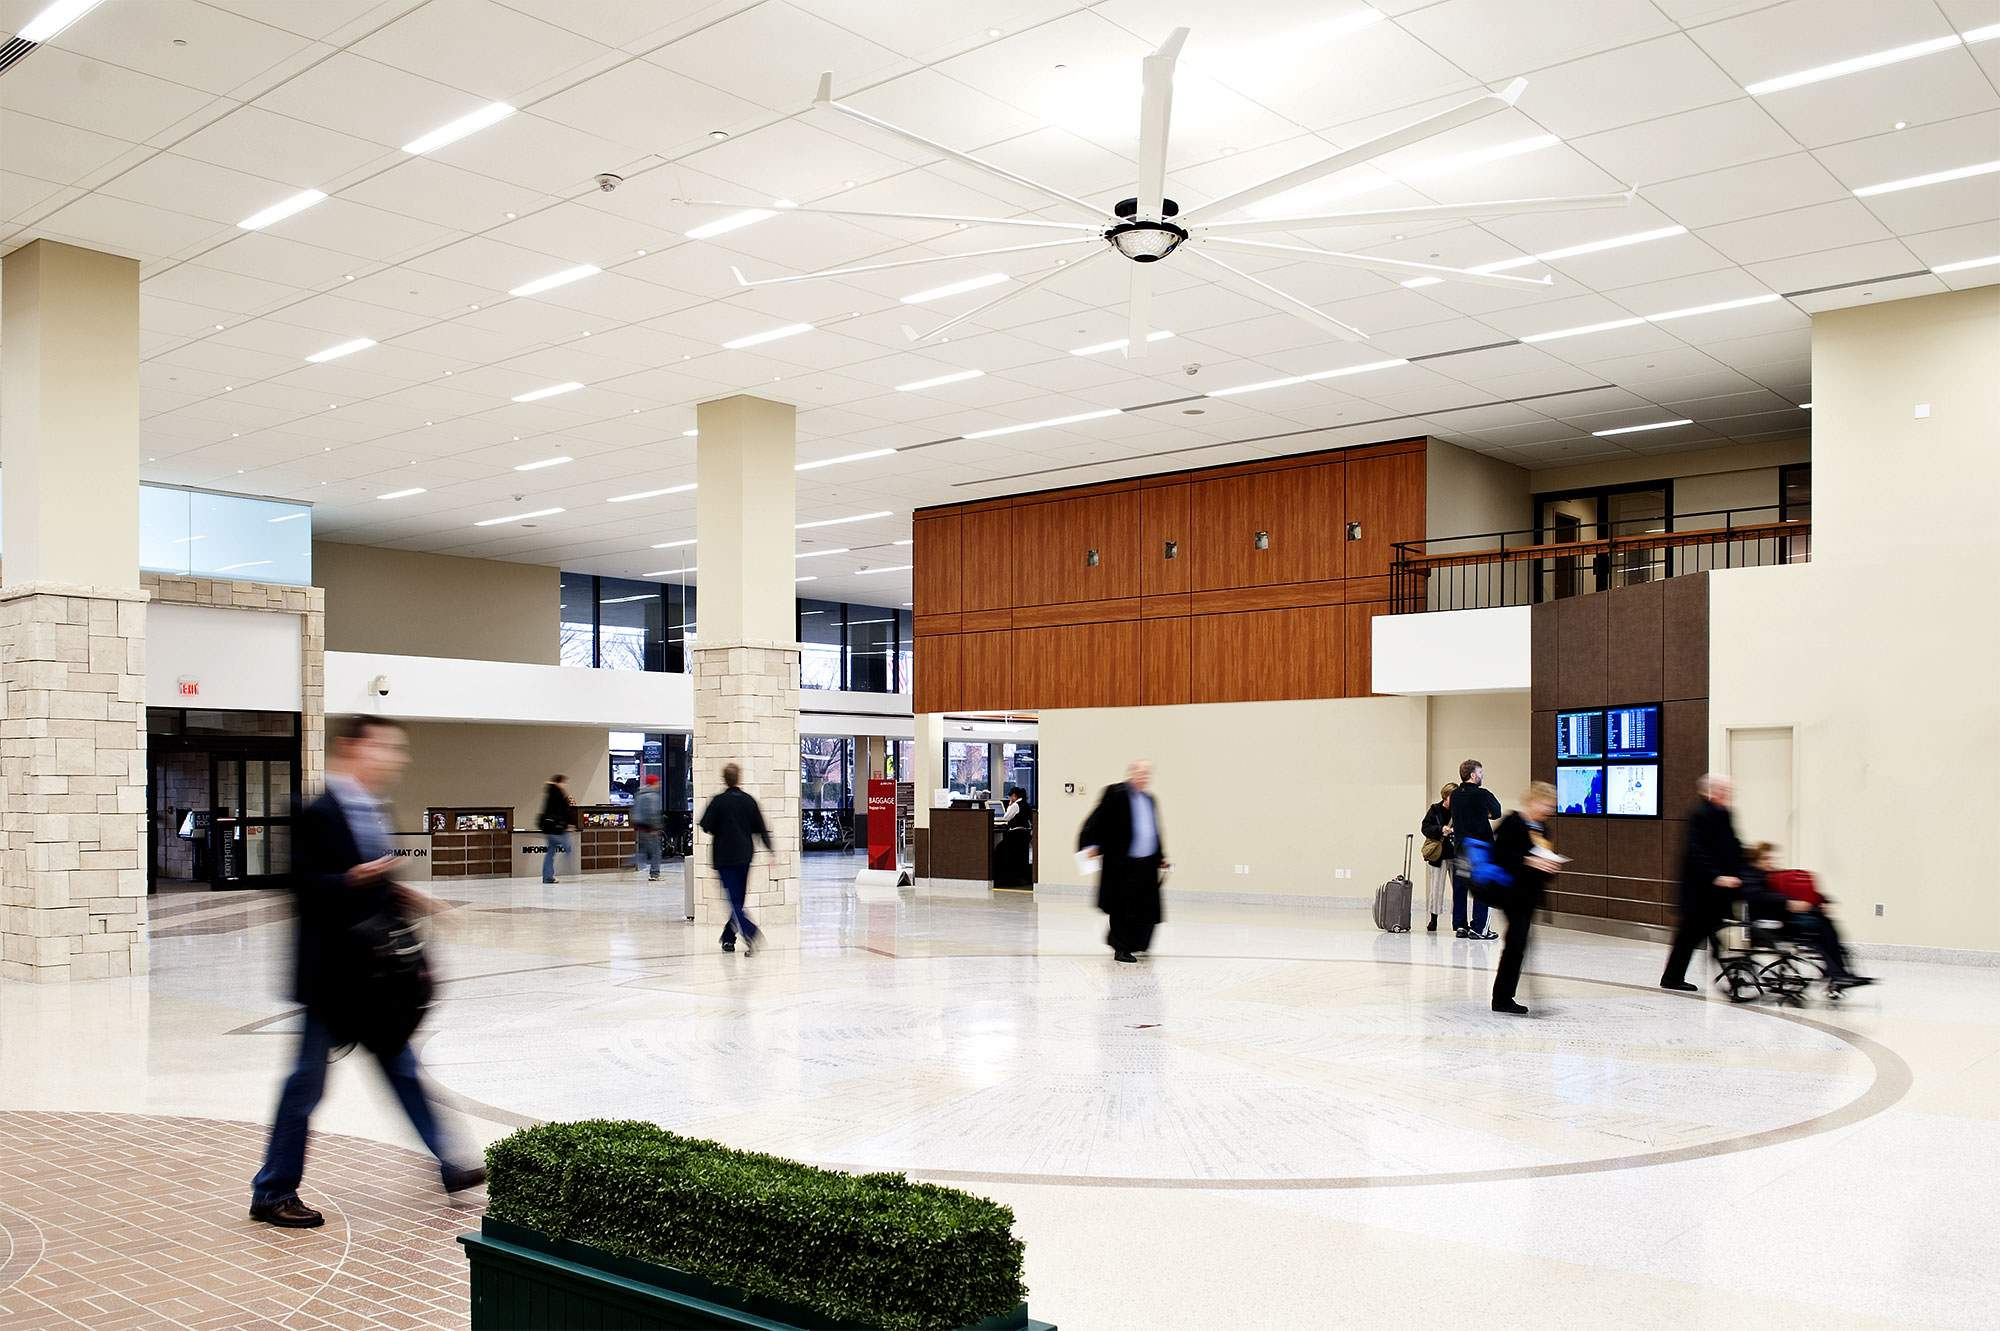 airport terminal ceiling fans reduce costs thanks to big ass fans